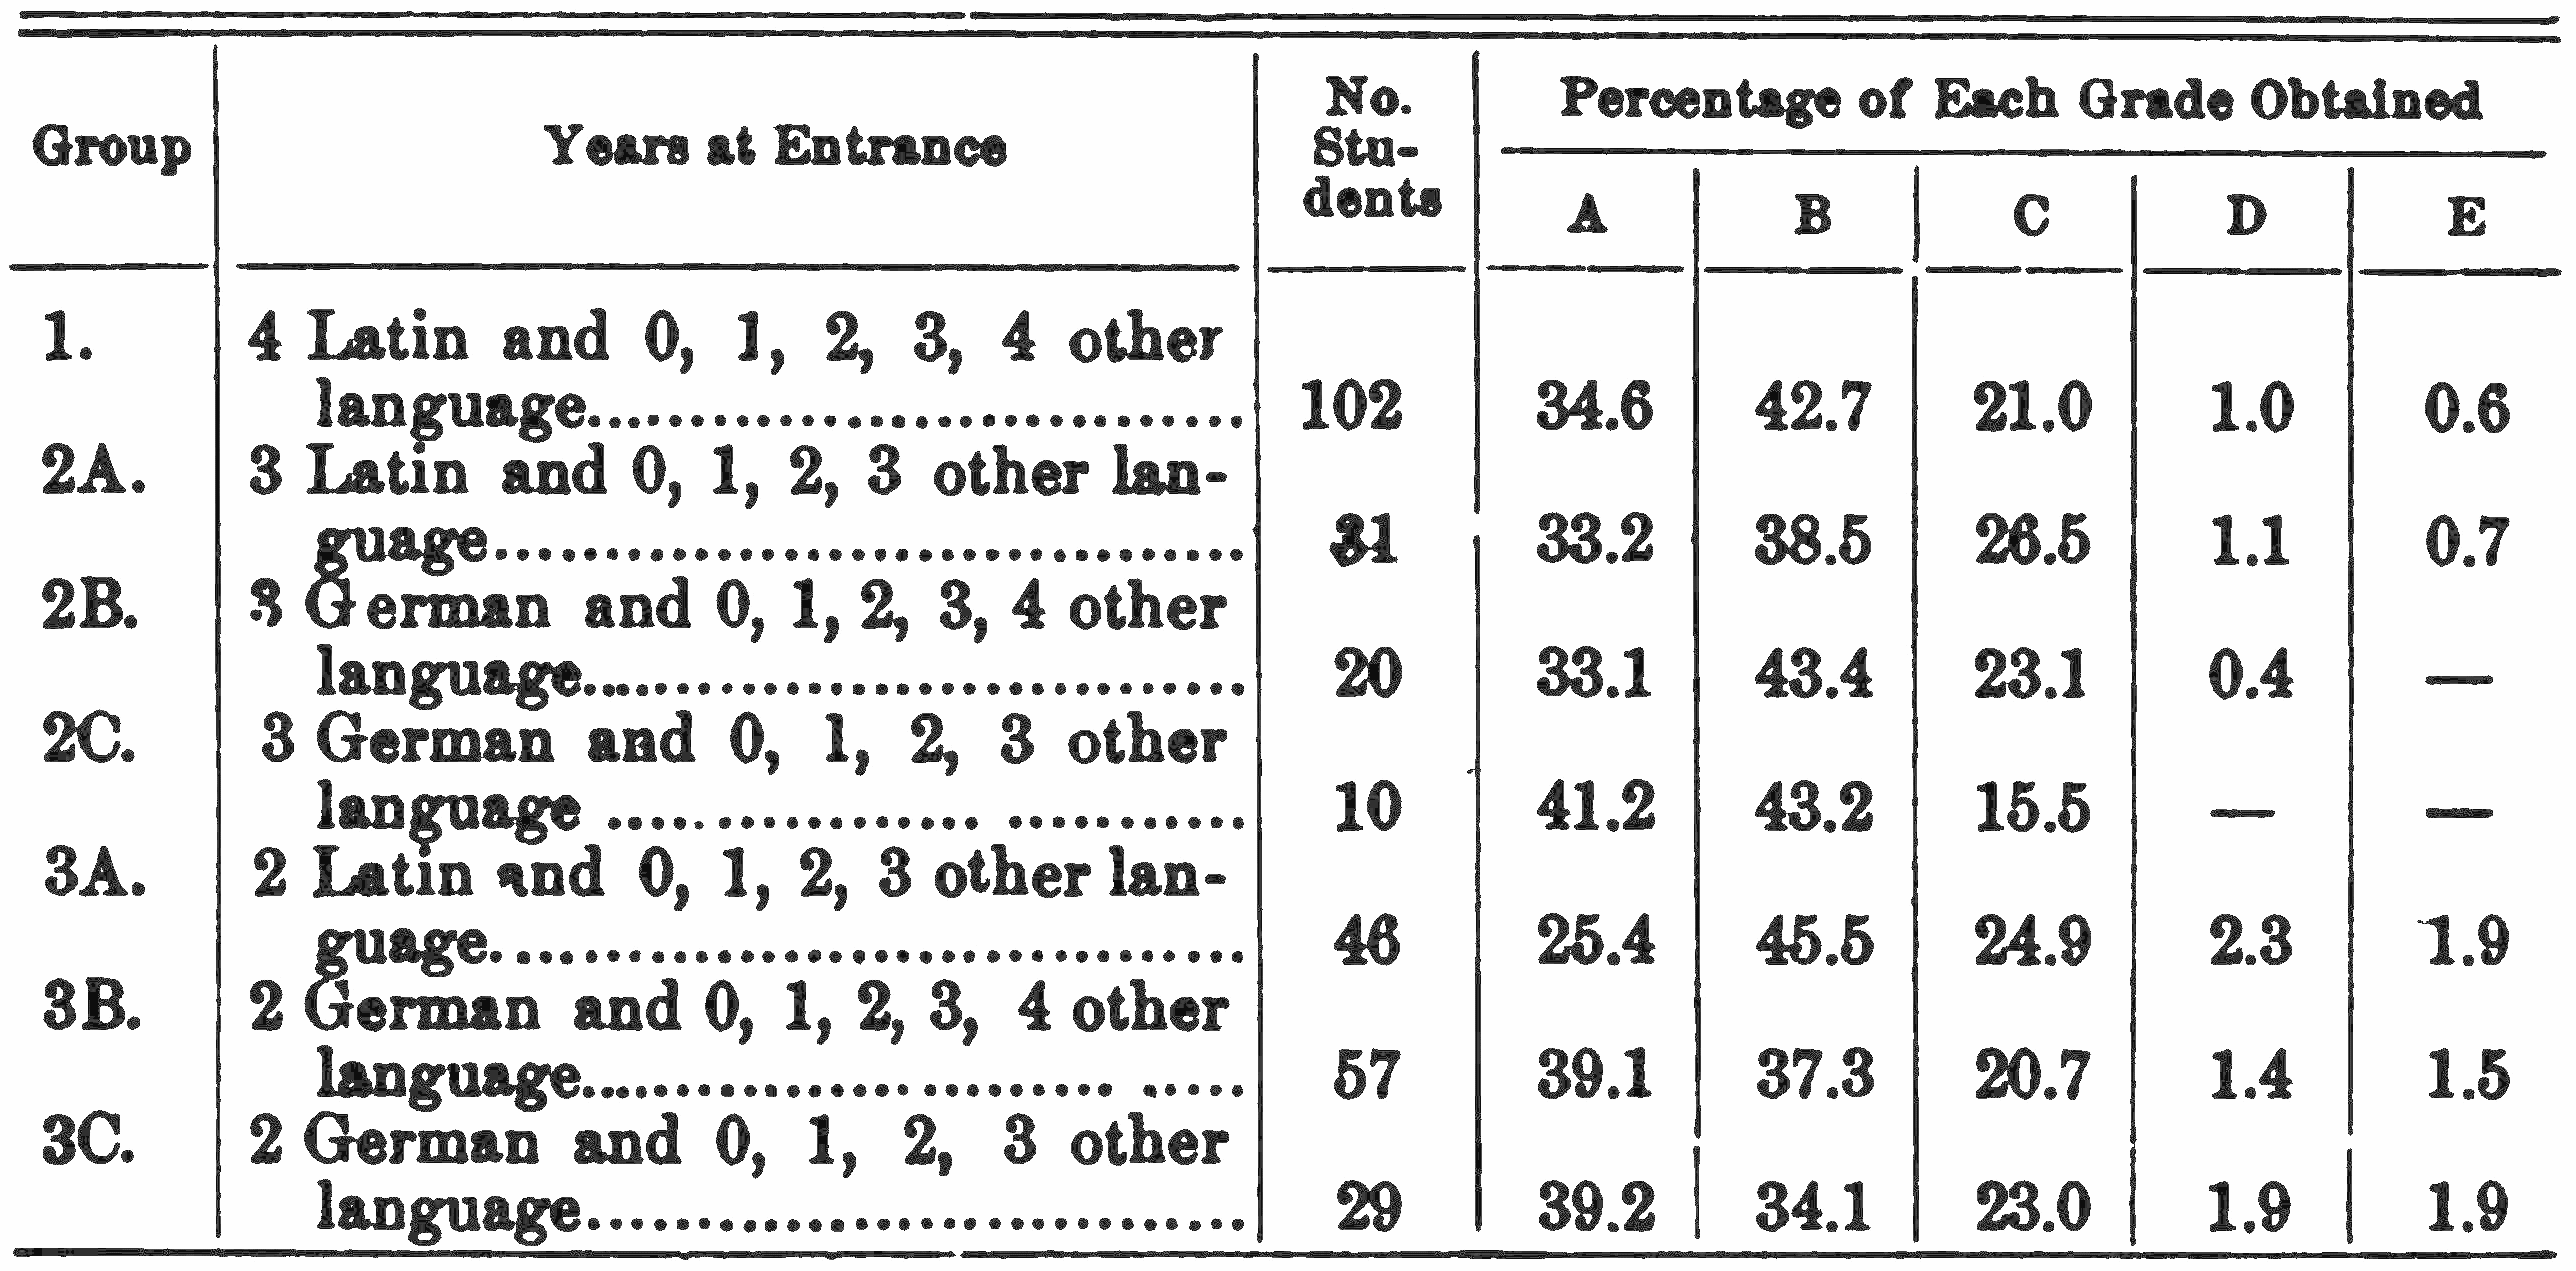 PSM V75 D398 Entrance records and grades for all studies 1903 to 1907.png